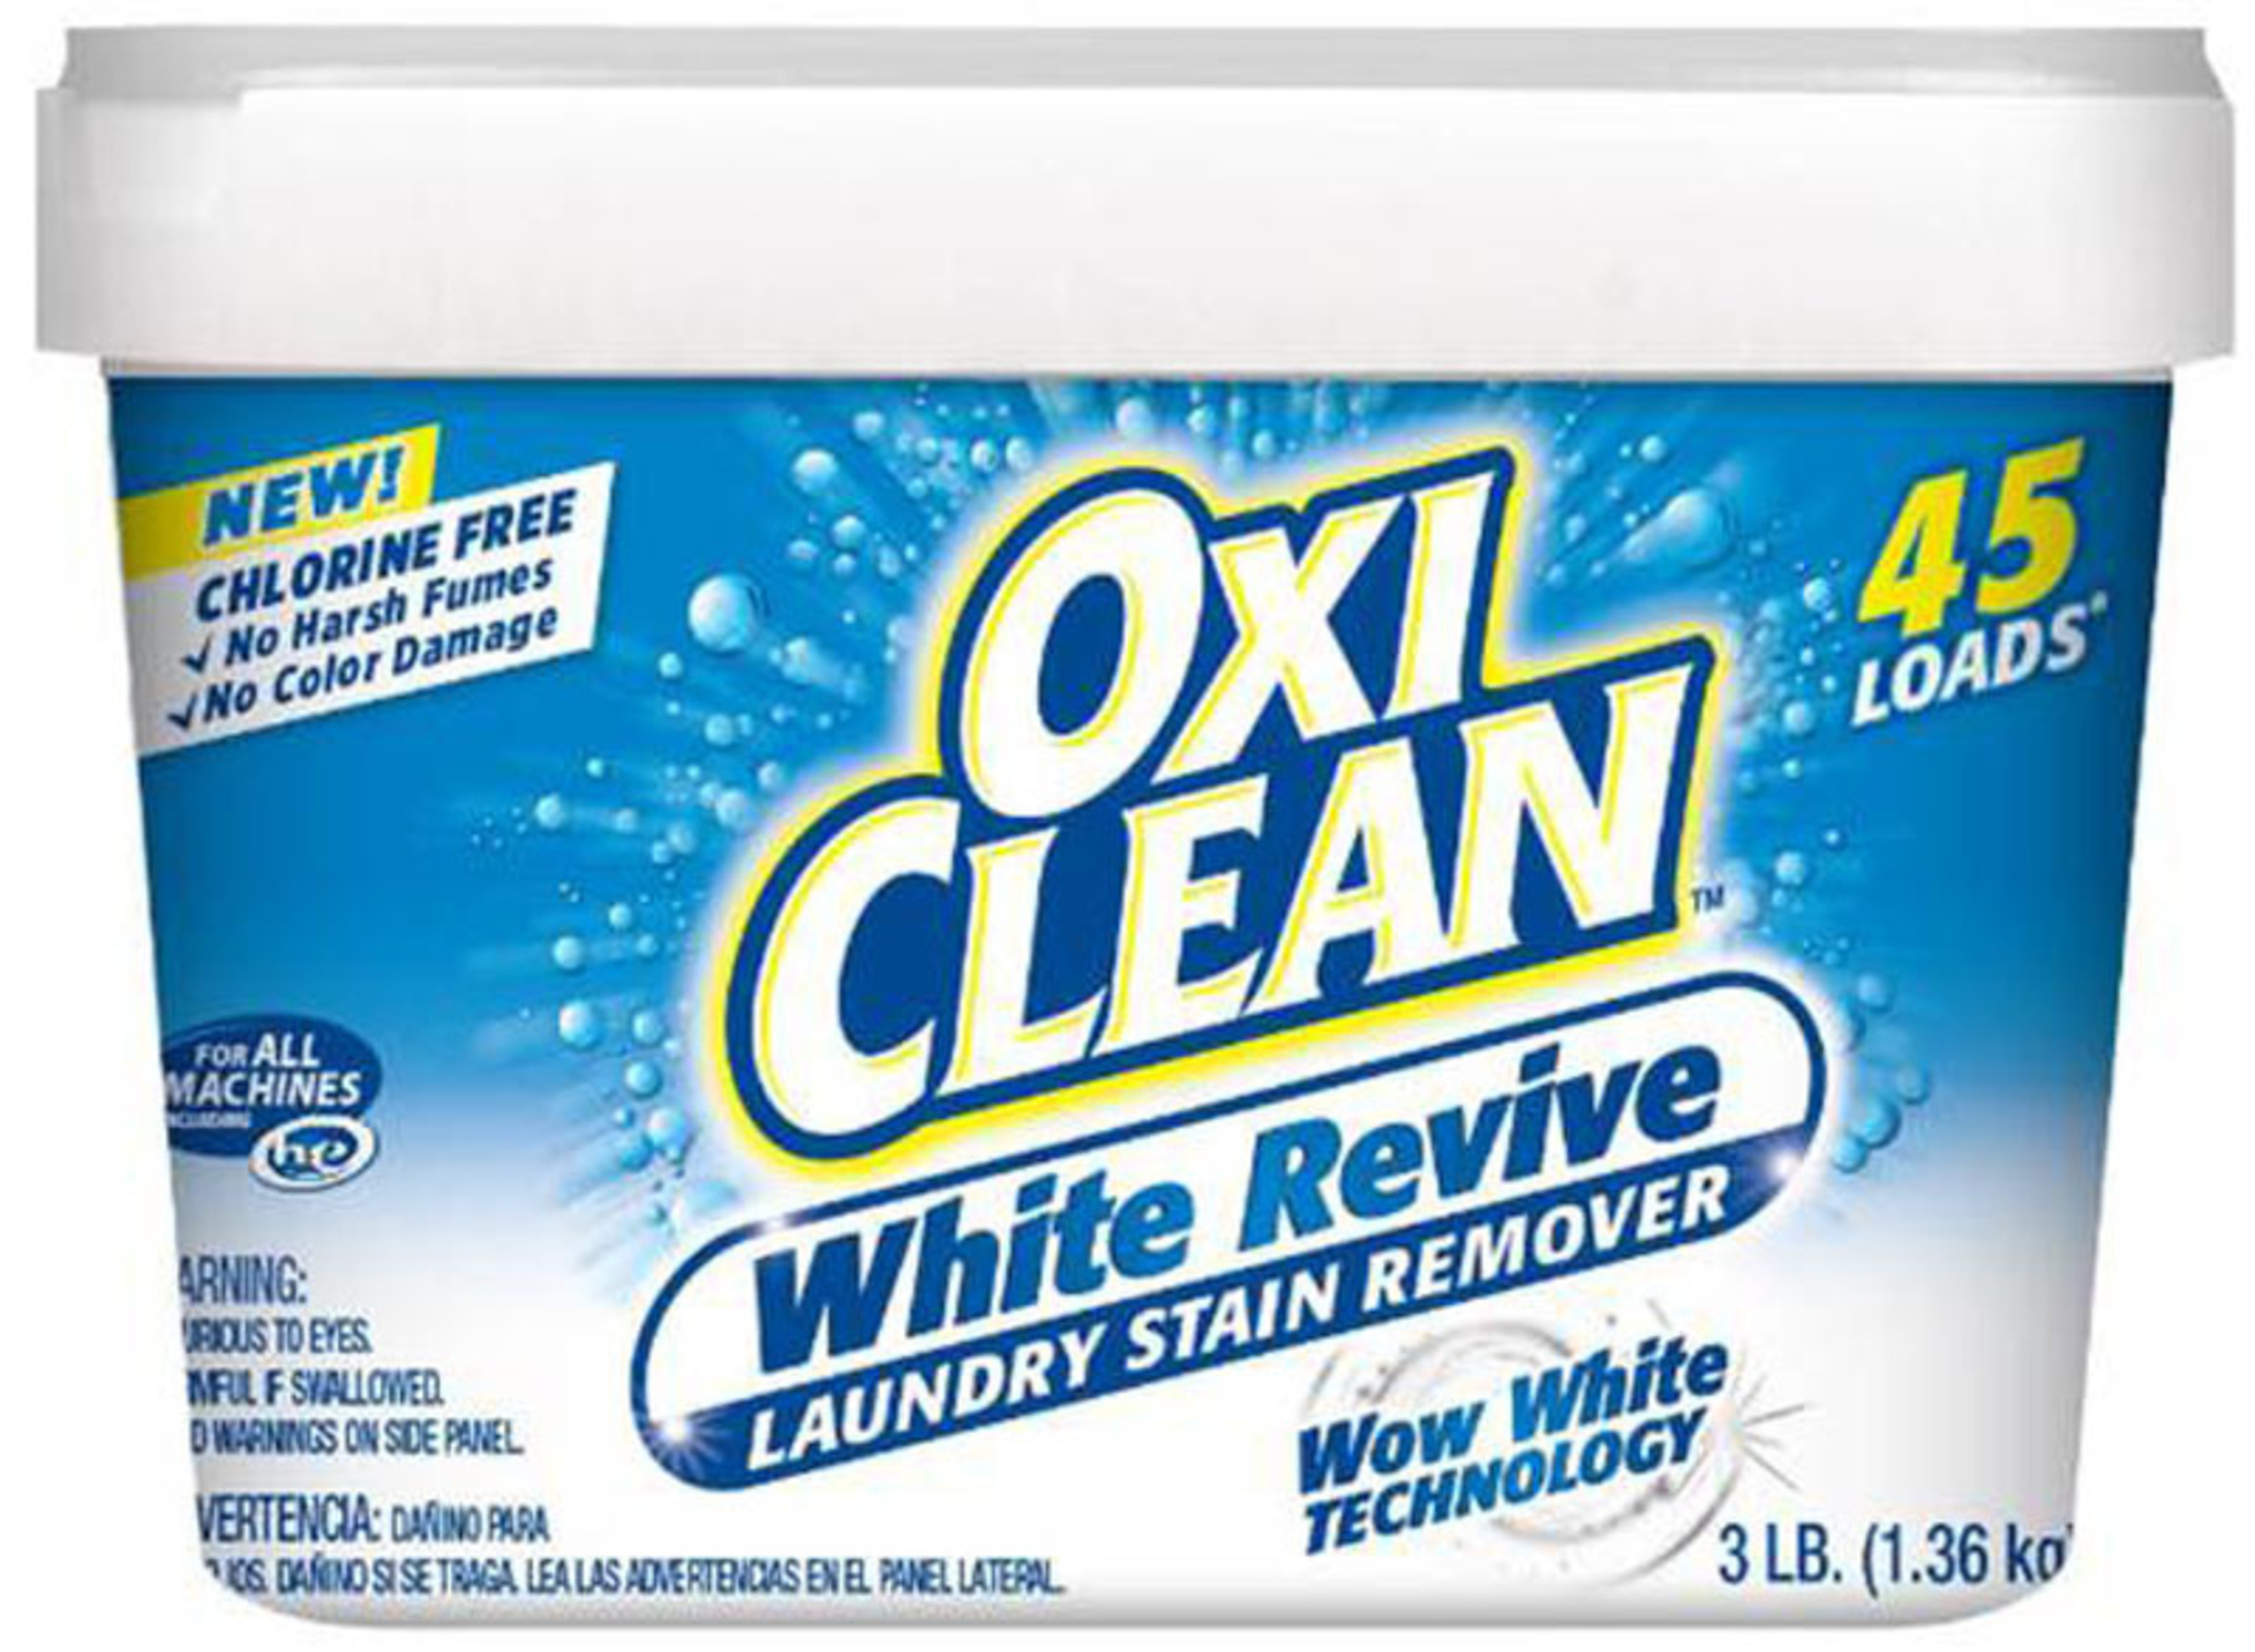 NEW OxiClean White Revive Laundry Stain Remover. (PRNewsFoto/CHURCH _ DWIGHT CO__ INC_)